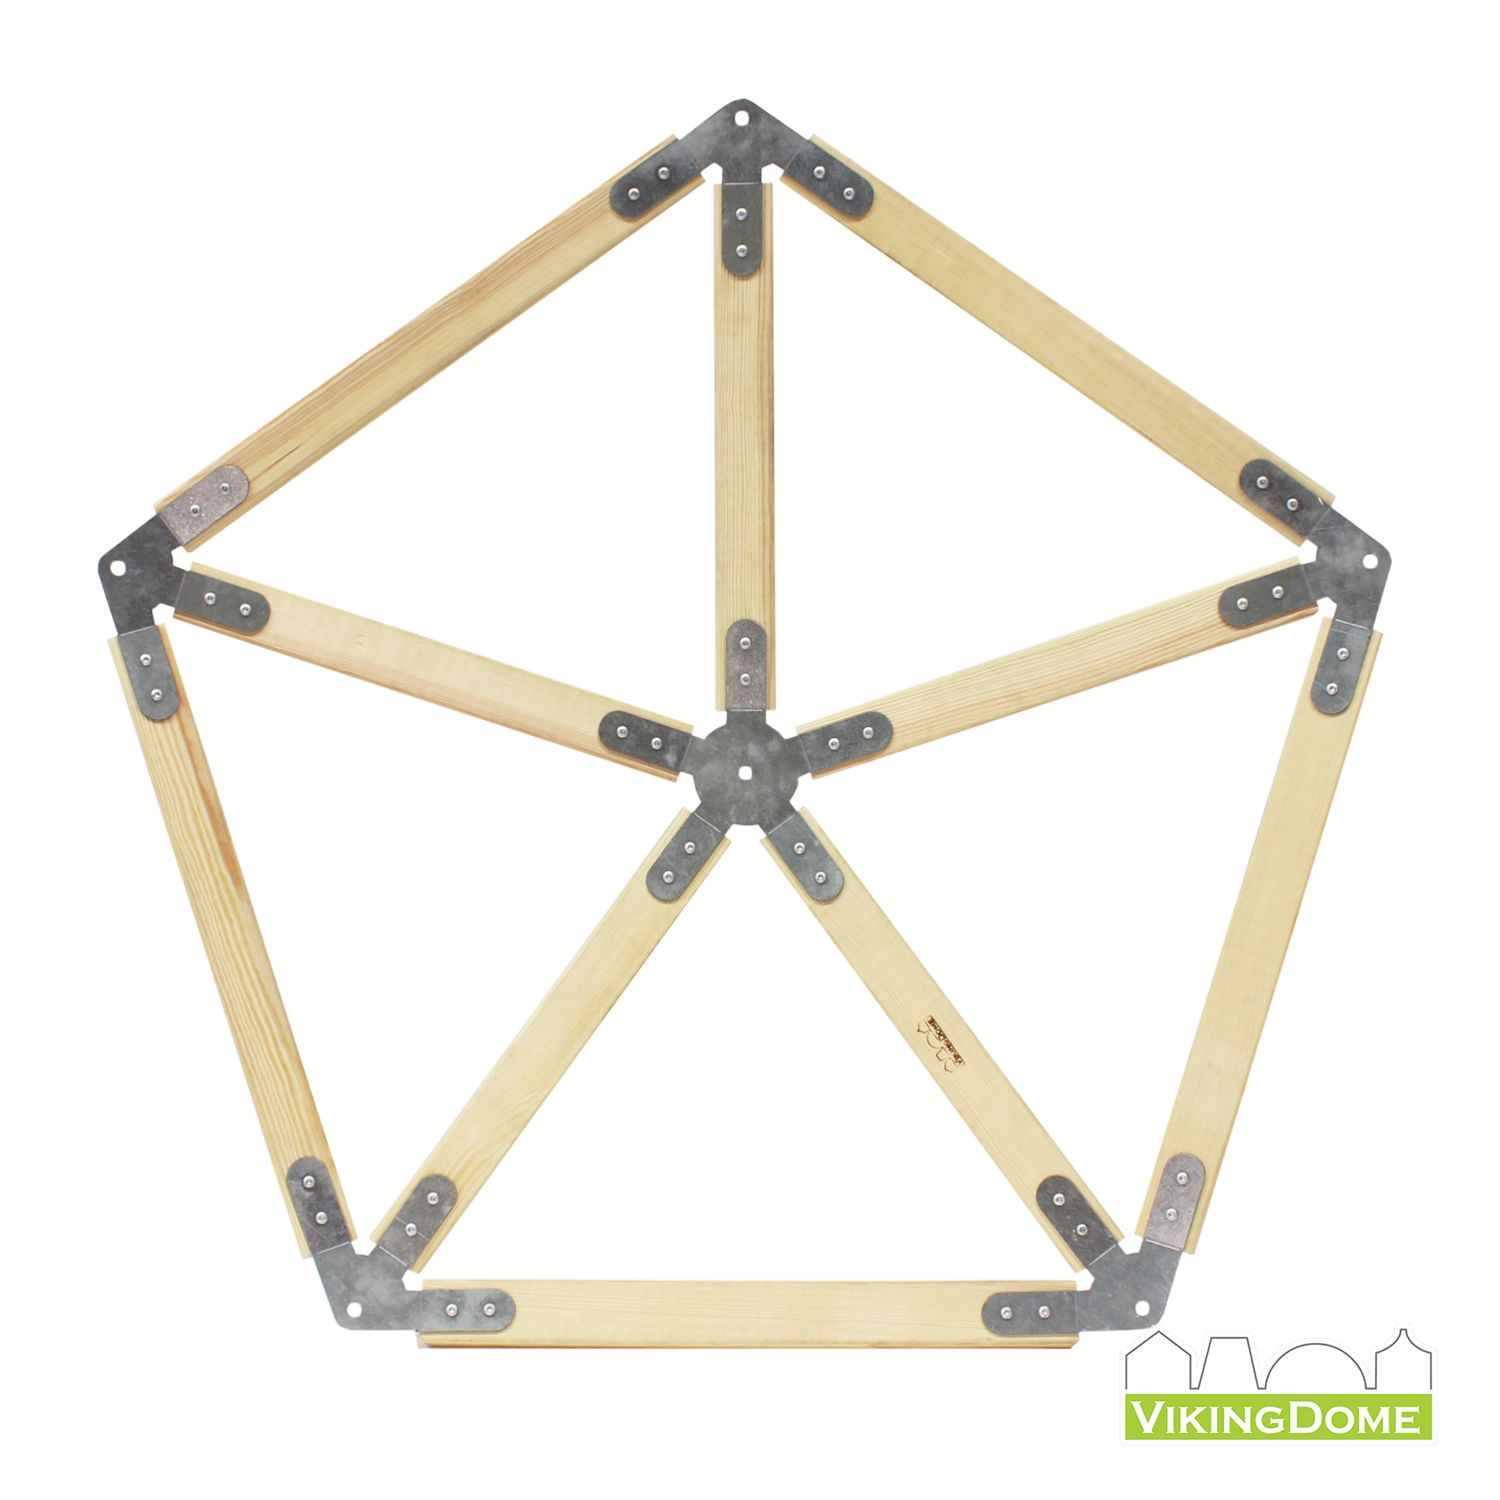 Vikingdome Dome Frame System Star With Wood (5